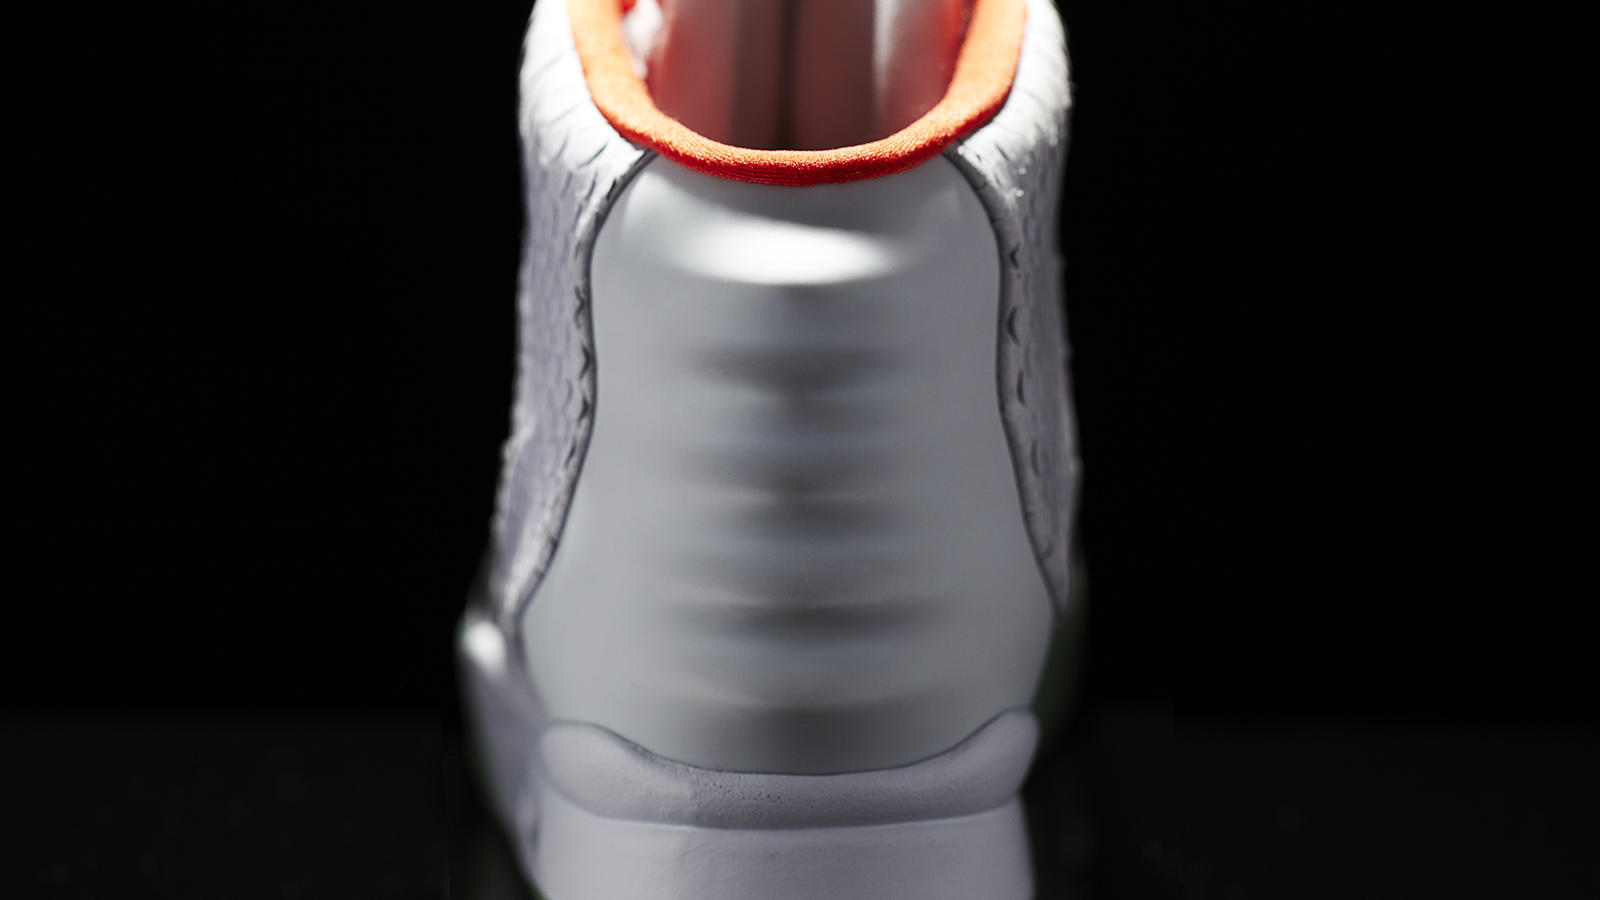 6279348170f7 Nike Air Yeezy II Back. Nike Air Yeezy II Detail 3.  Nike Air Yeezy II Detail 4. Nike Air Yeezy II Detail.  Nike Air Yeezy II Profile